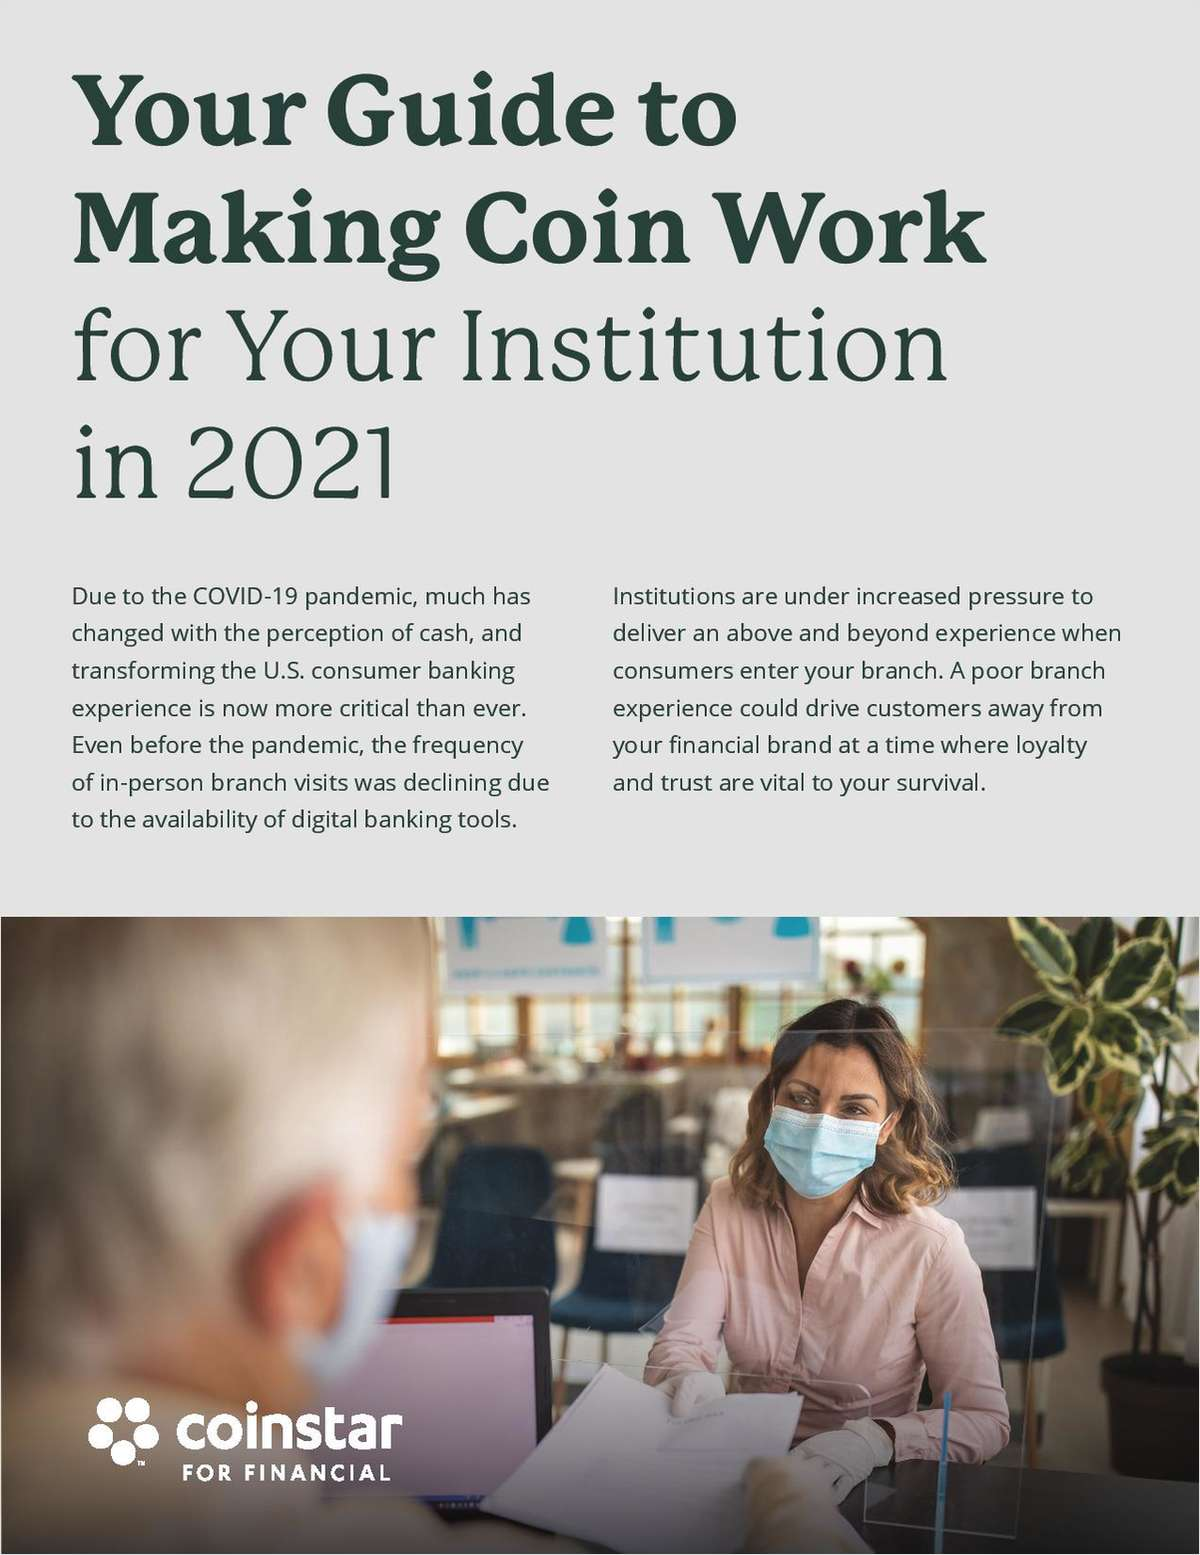 Your Guide to Making Coin Work for Your Institution in 2021